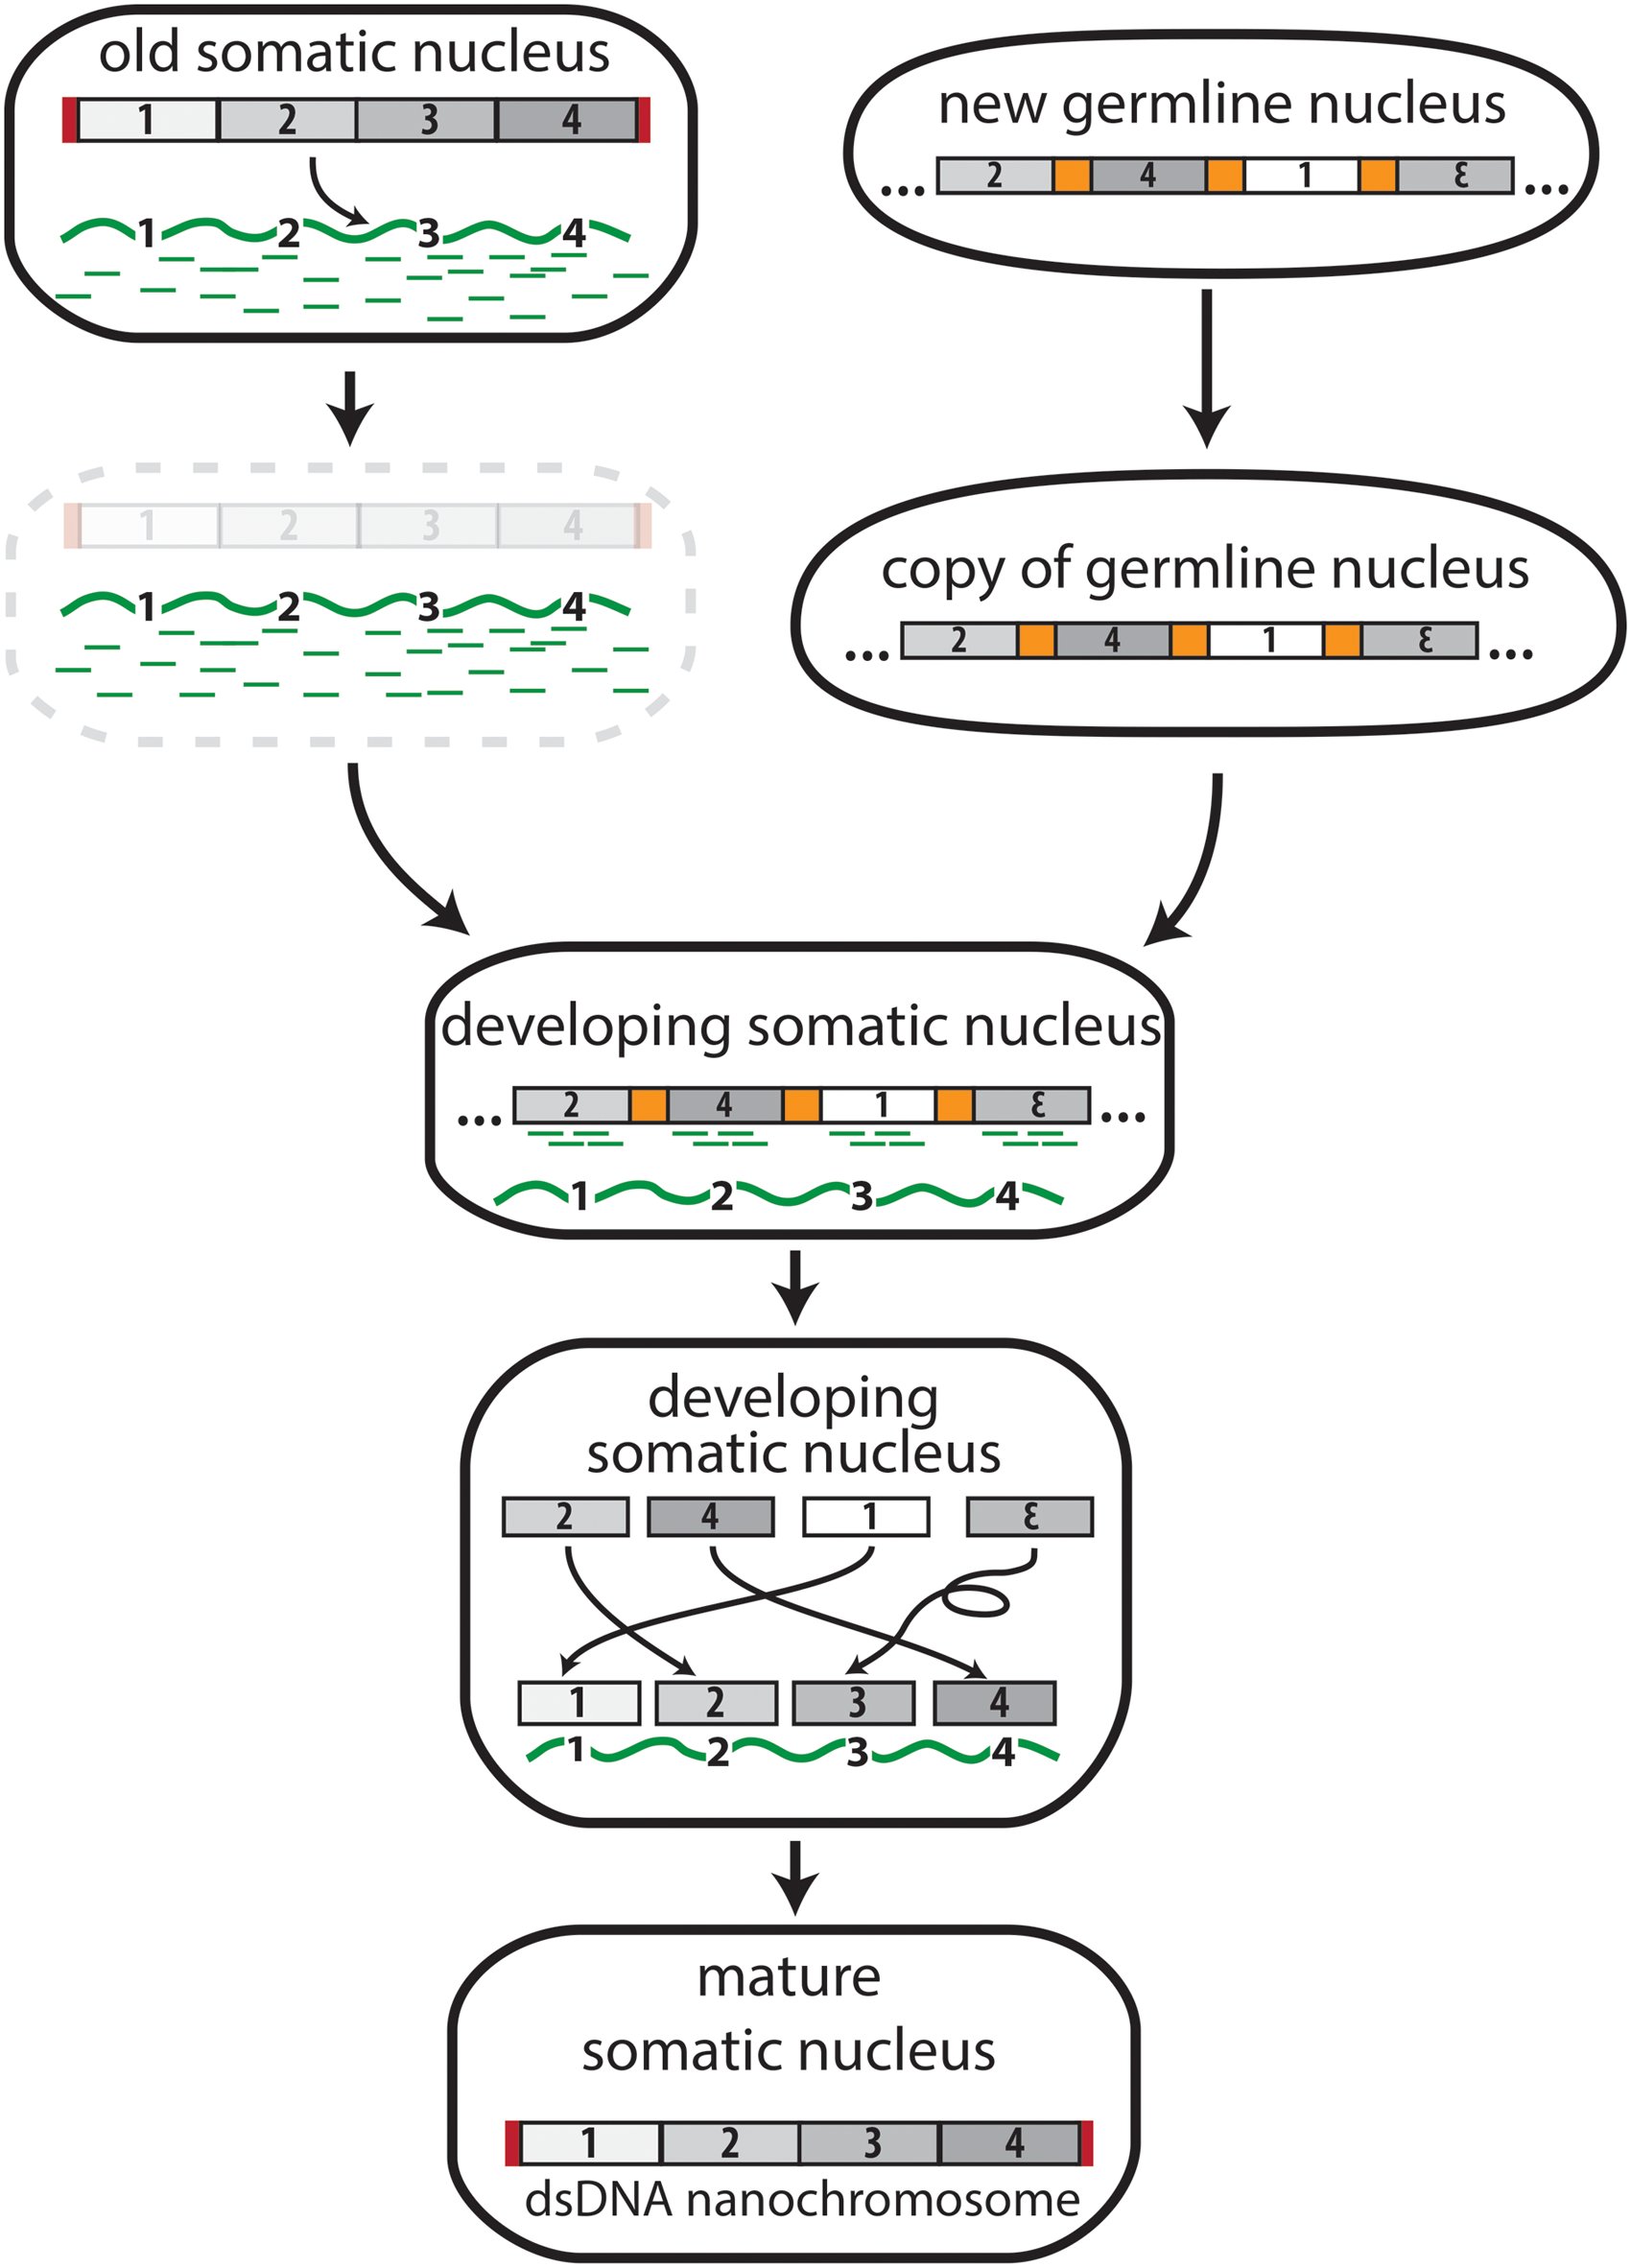 The transfer of genomic information from DNA to RNA in <i>Oxytricha trifallax</i>.